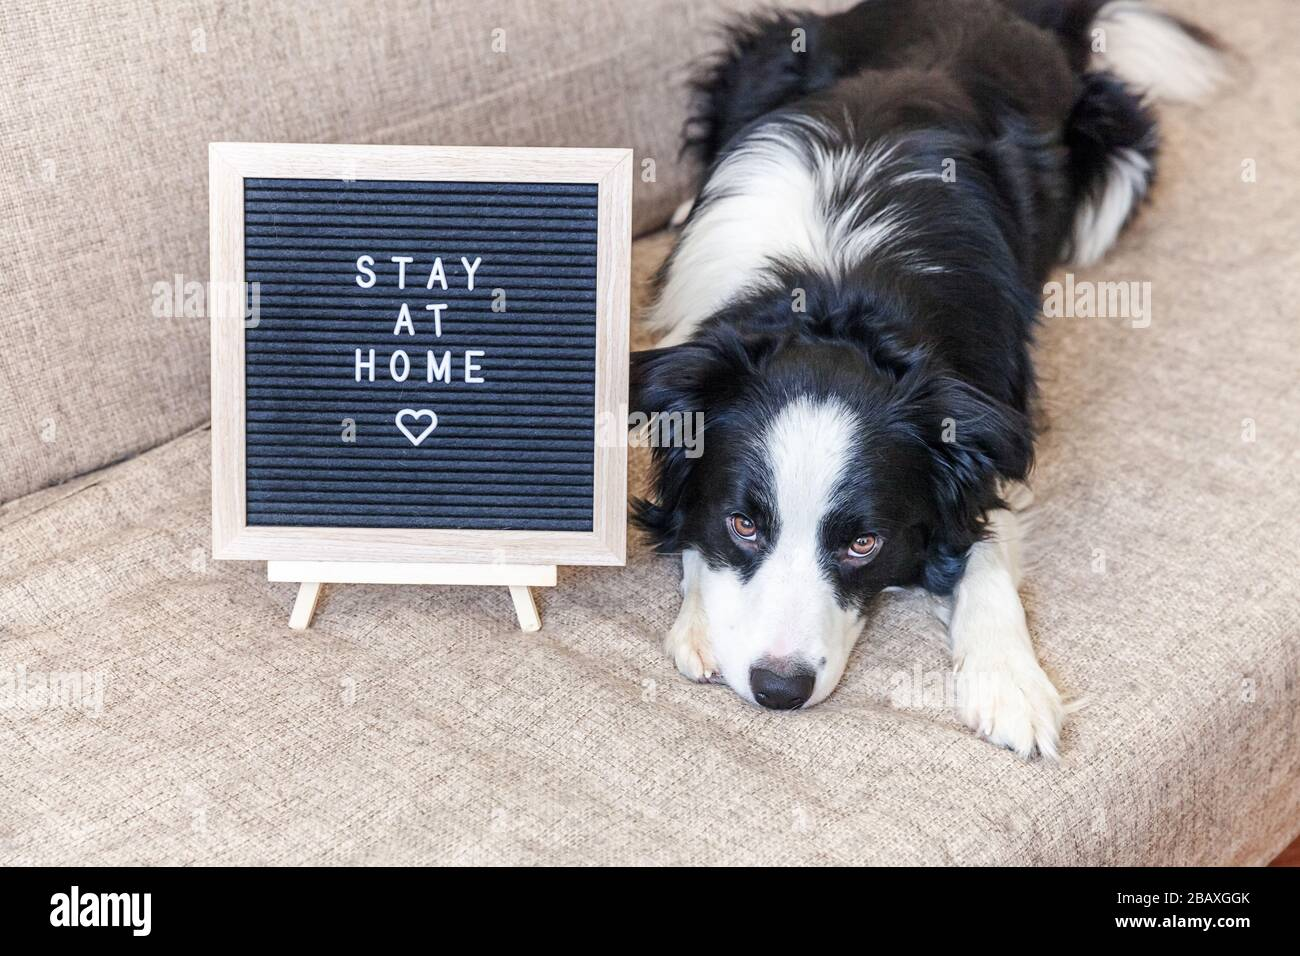 Stay Home Funny Portrait Of Cute Puppy Dog On Couch With Letter Board Inscription Stay At